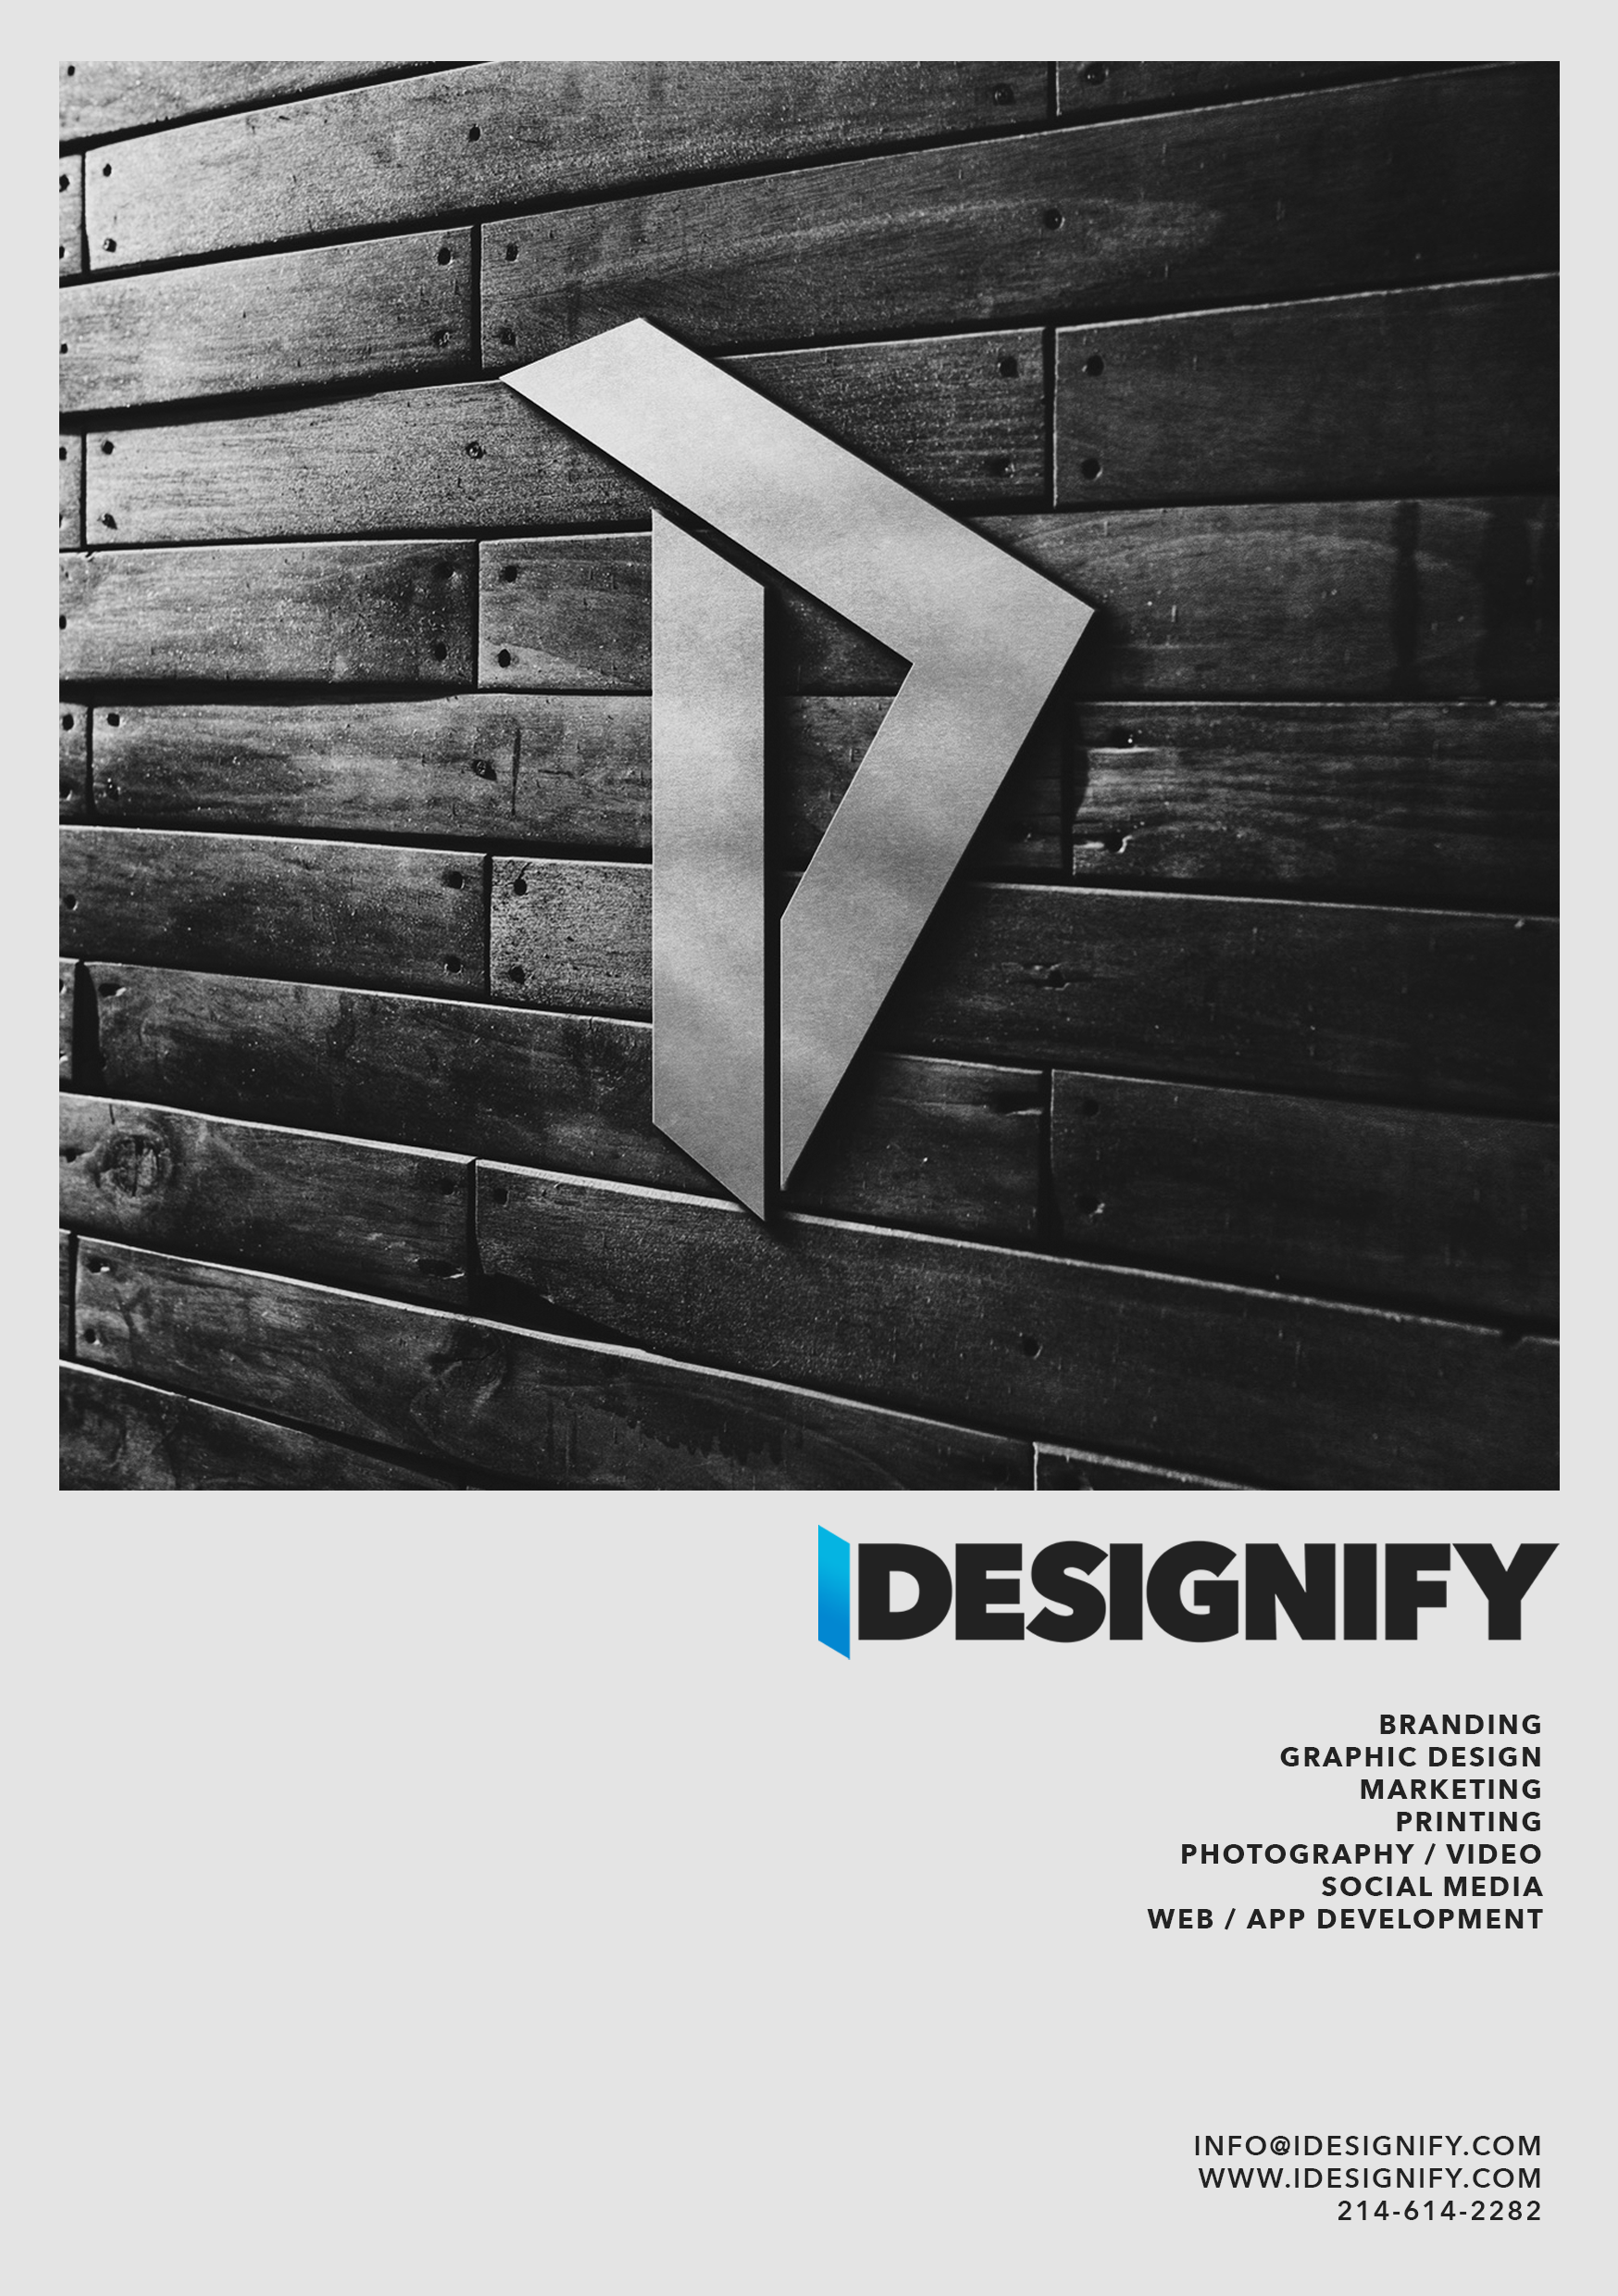 idesignify flyer.png